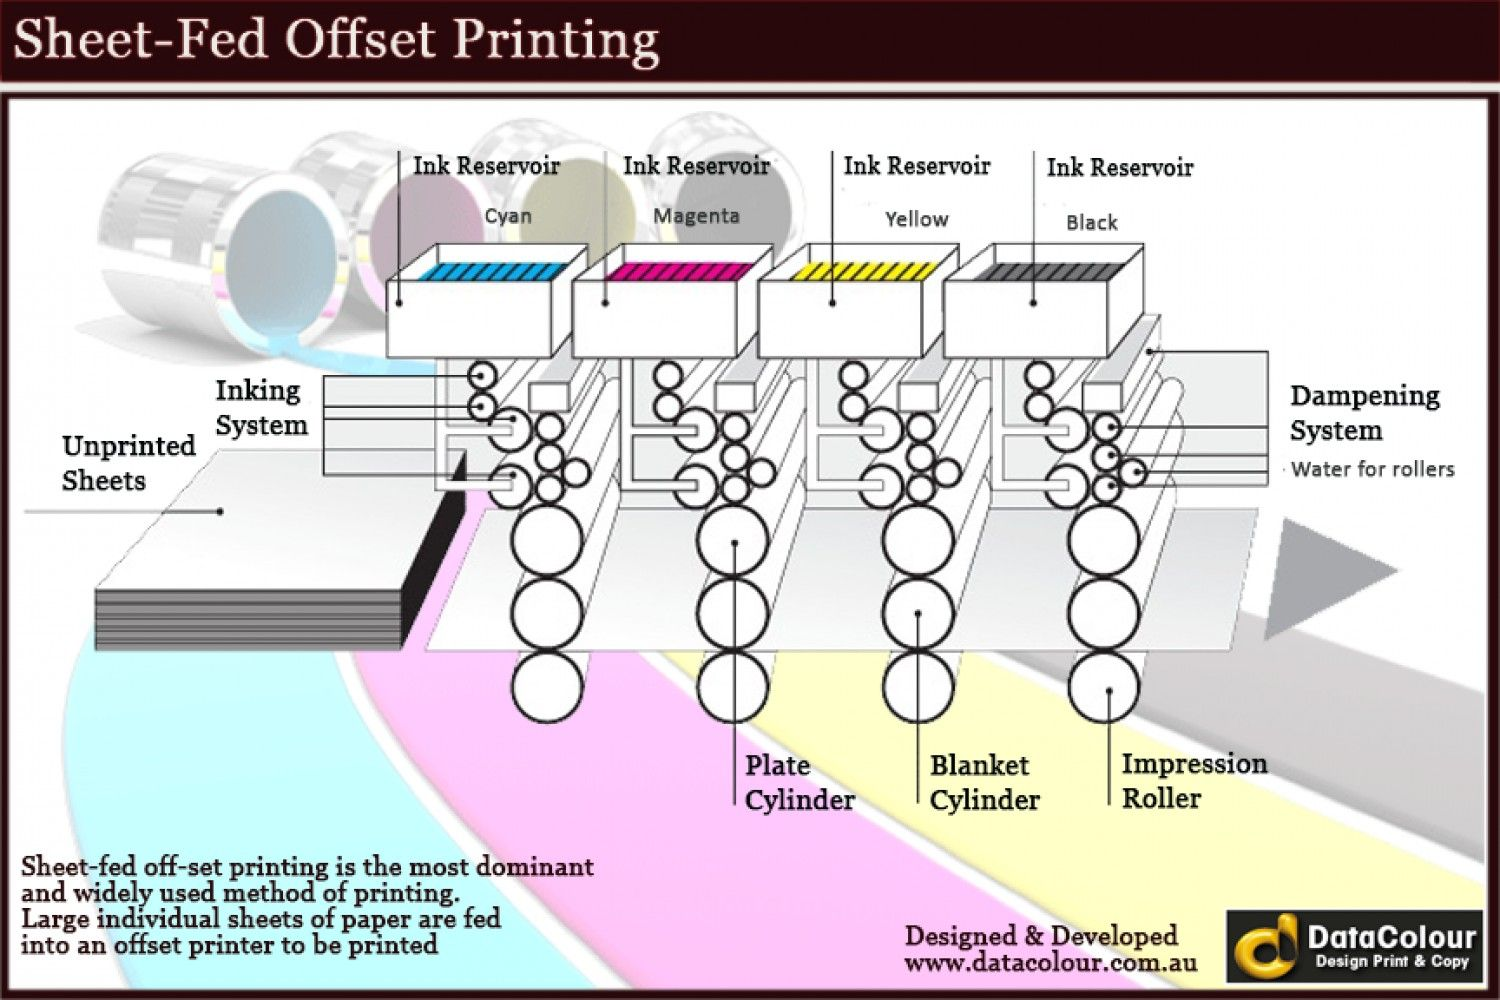 Sheet-Fed-Offset-Printing Infographic | infographic | Offset